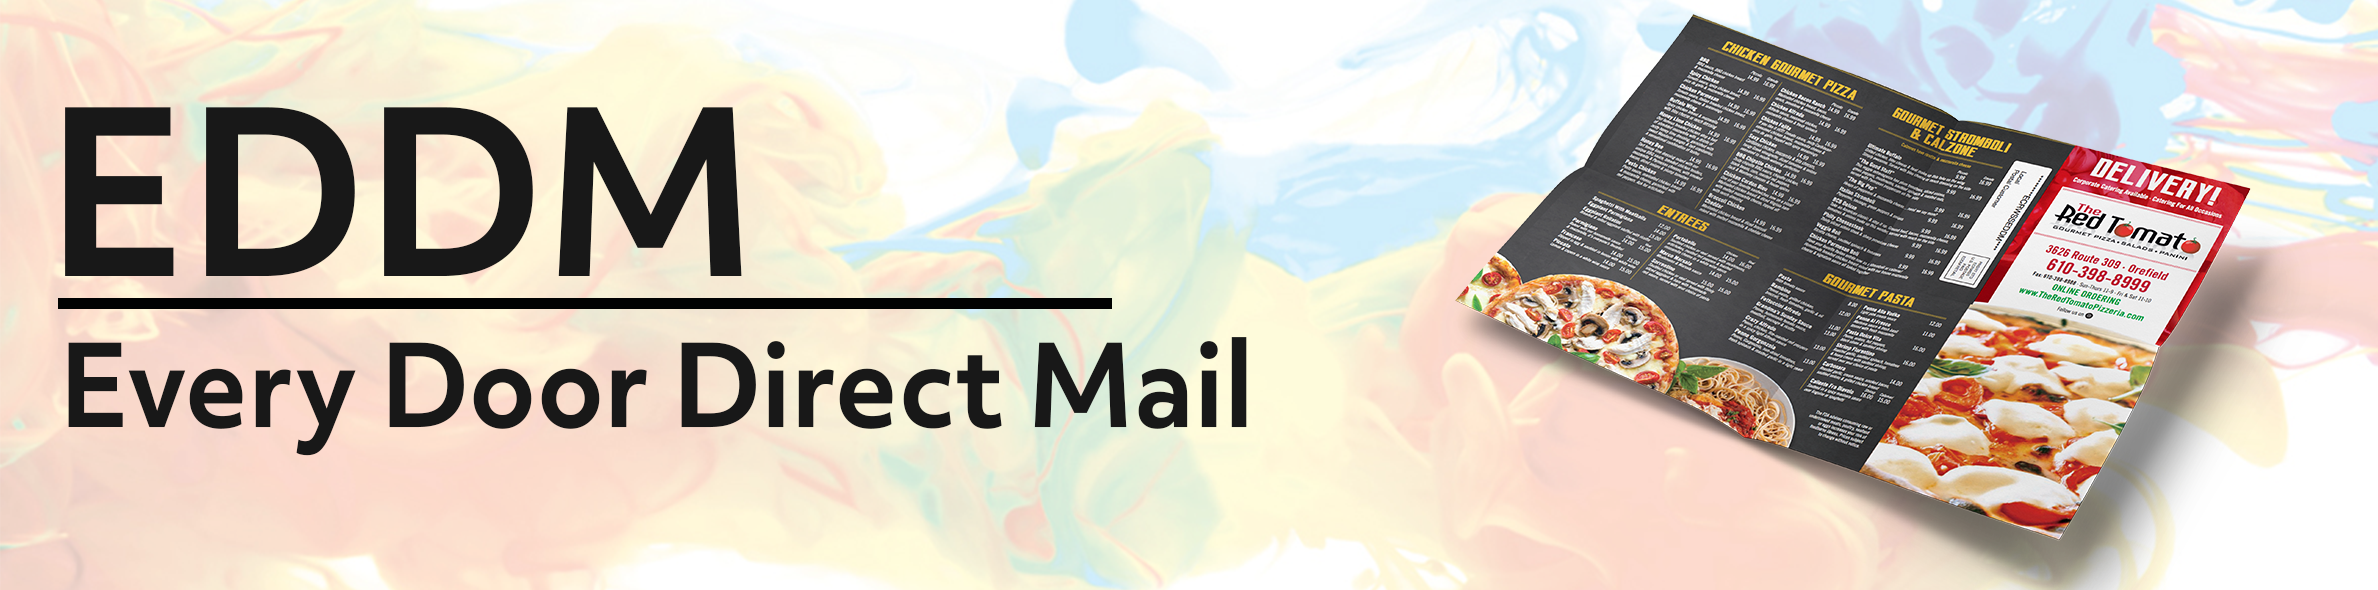 Understanding Every Door Direct Mail (EDDM)